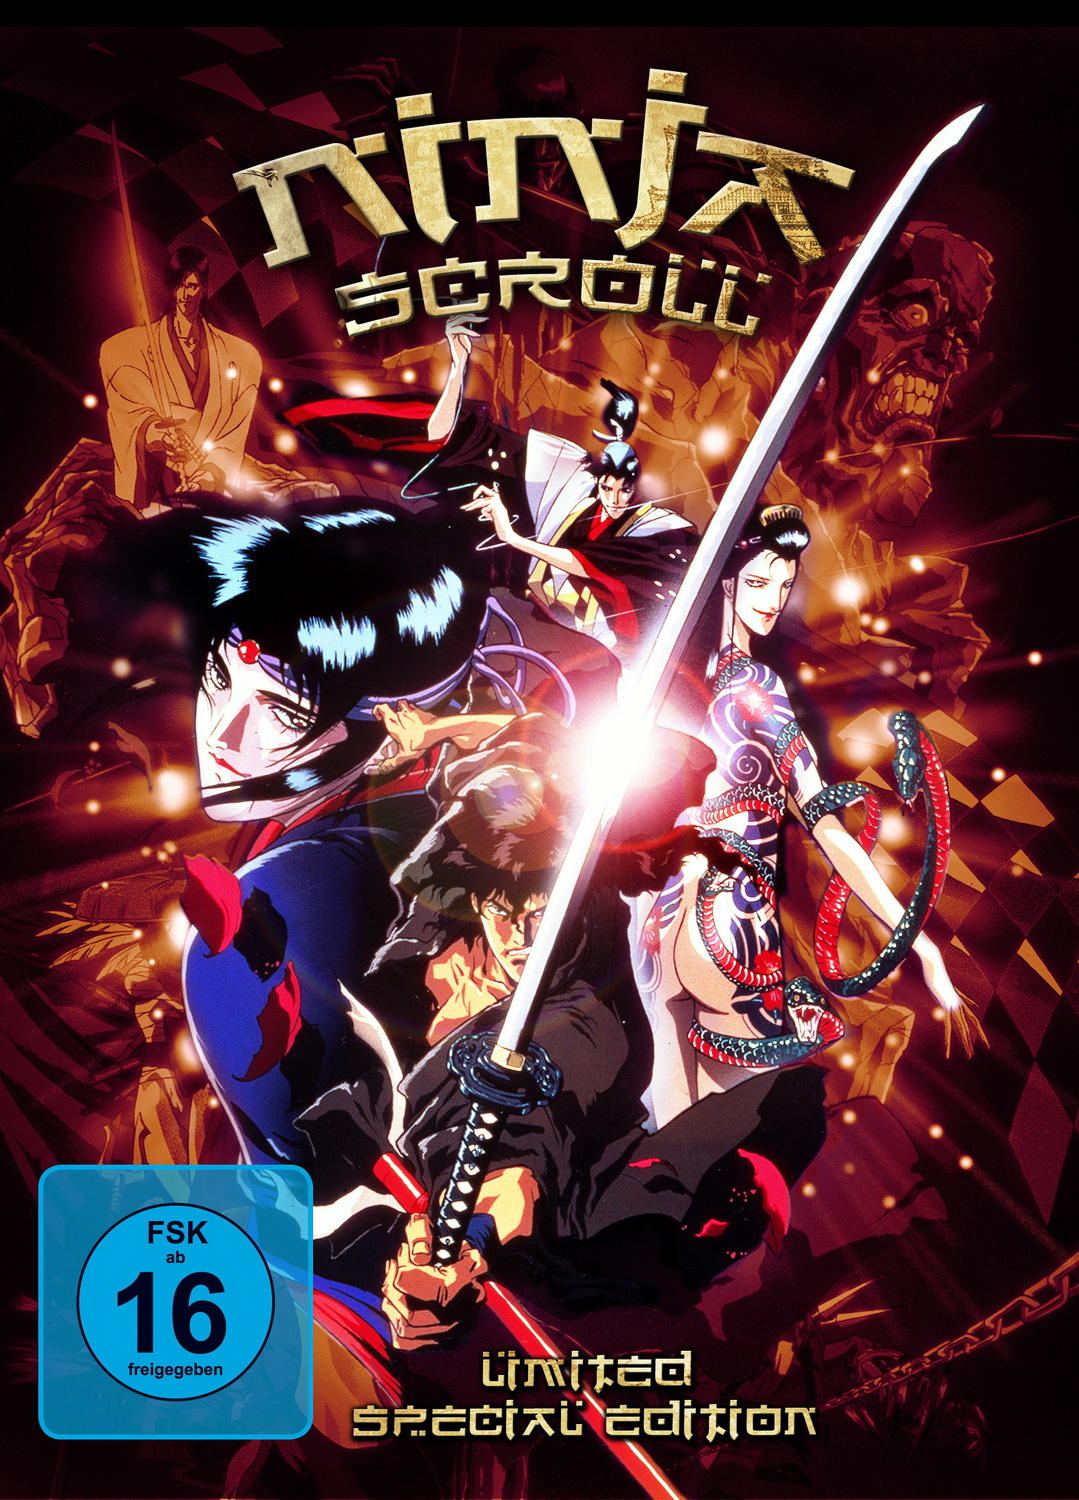 Ninja Scroll Limited Special Edition